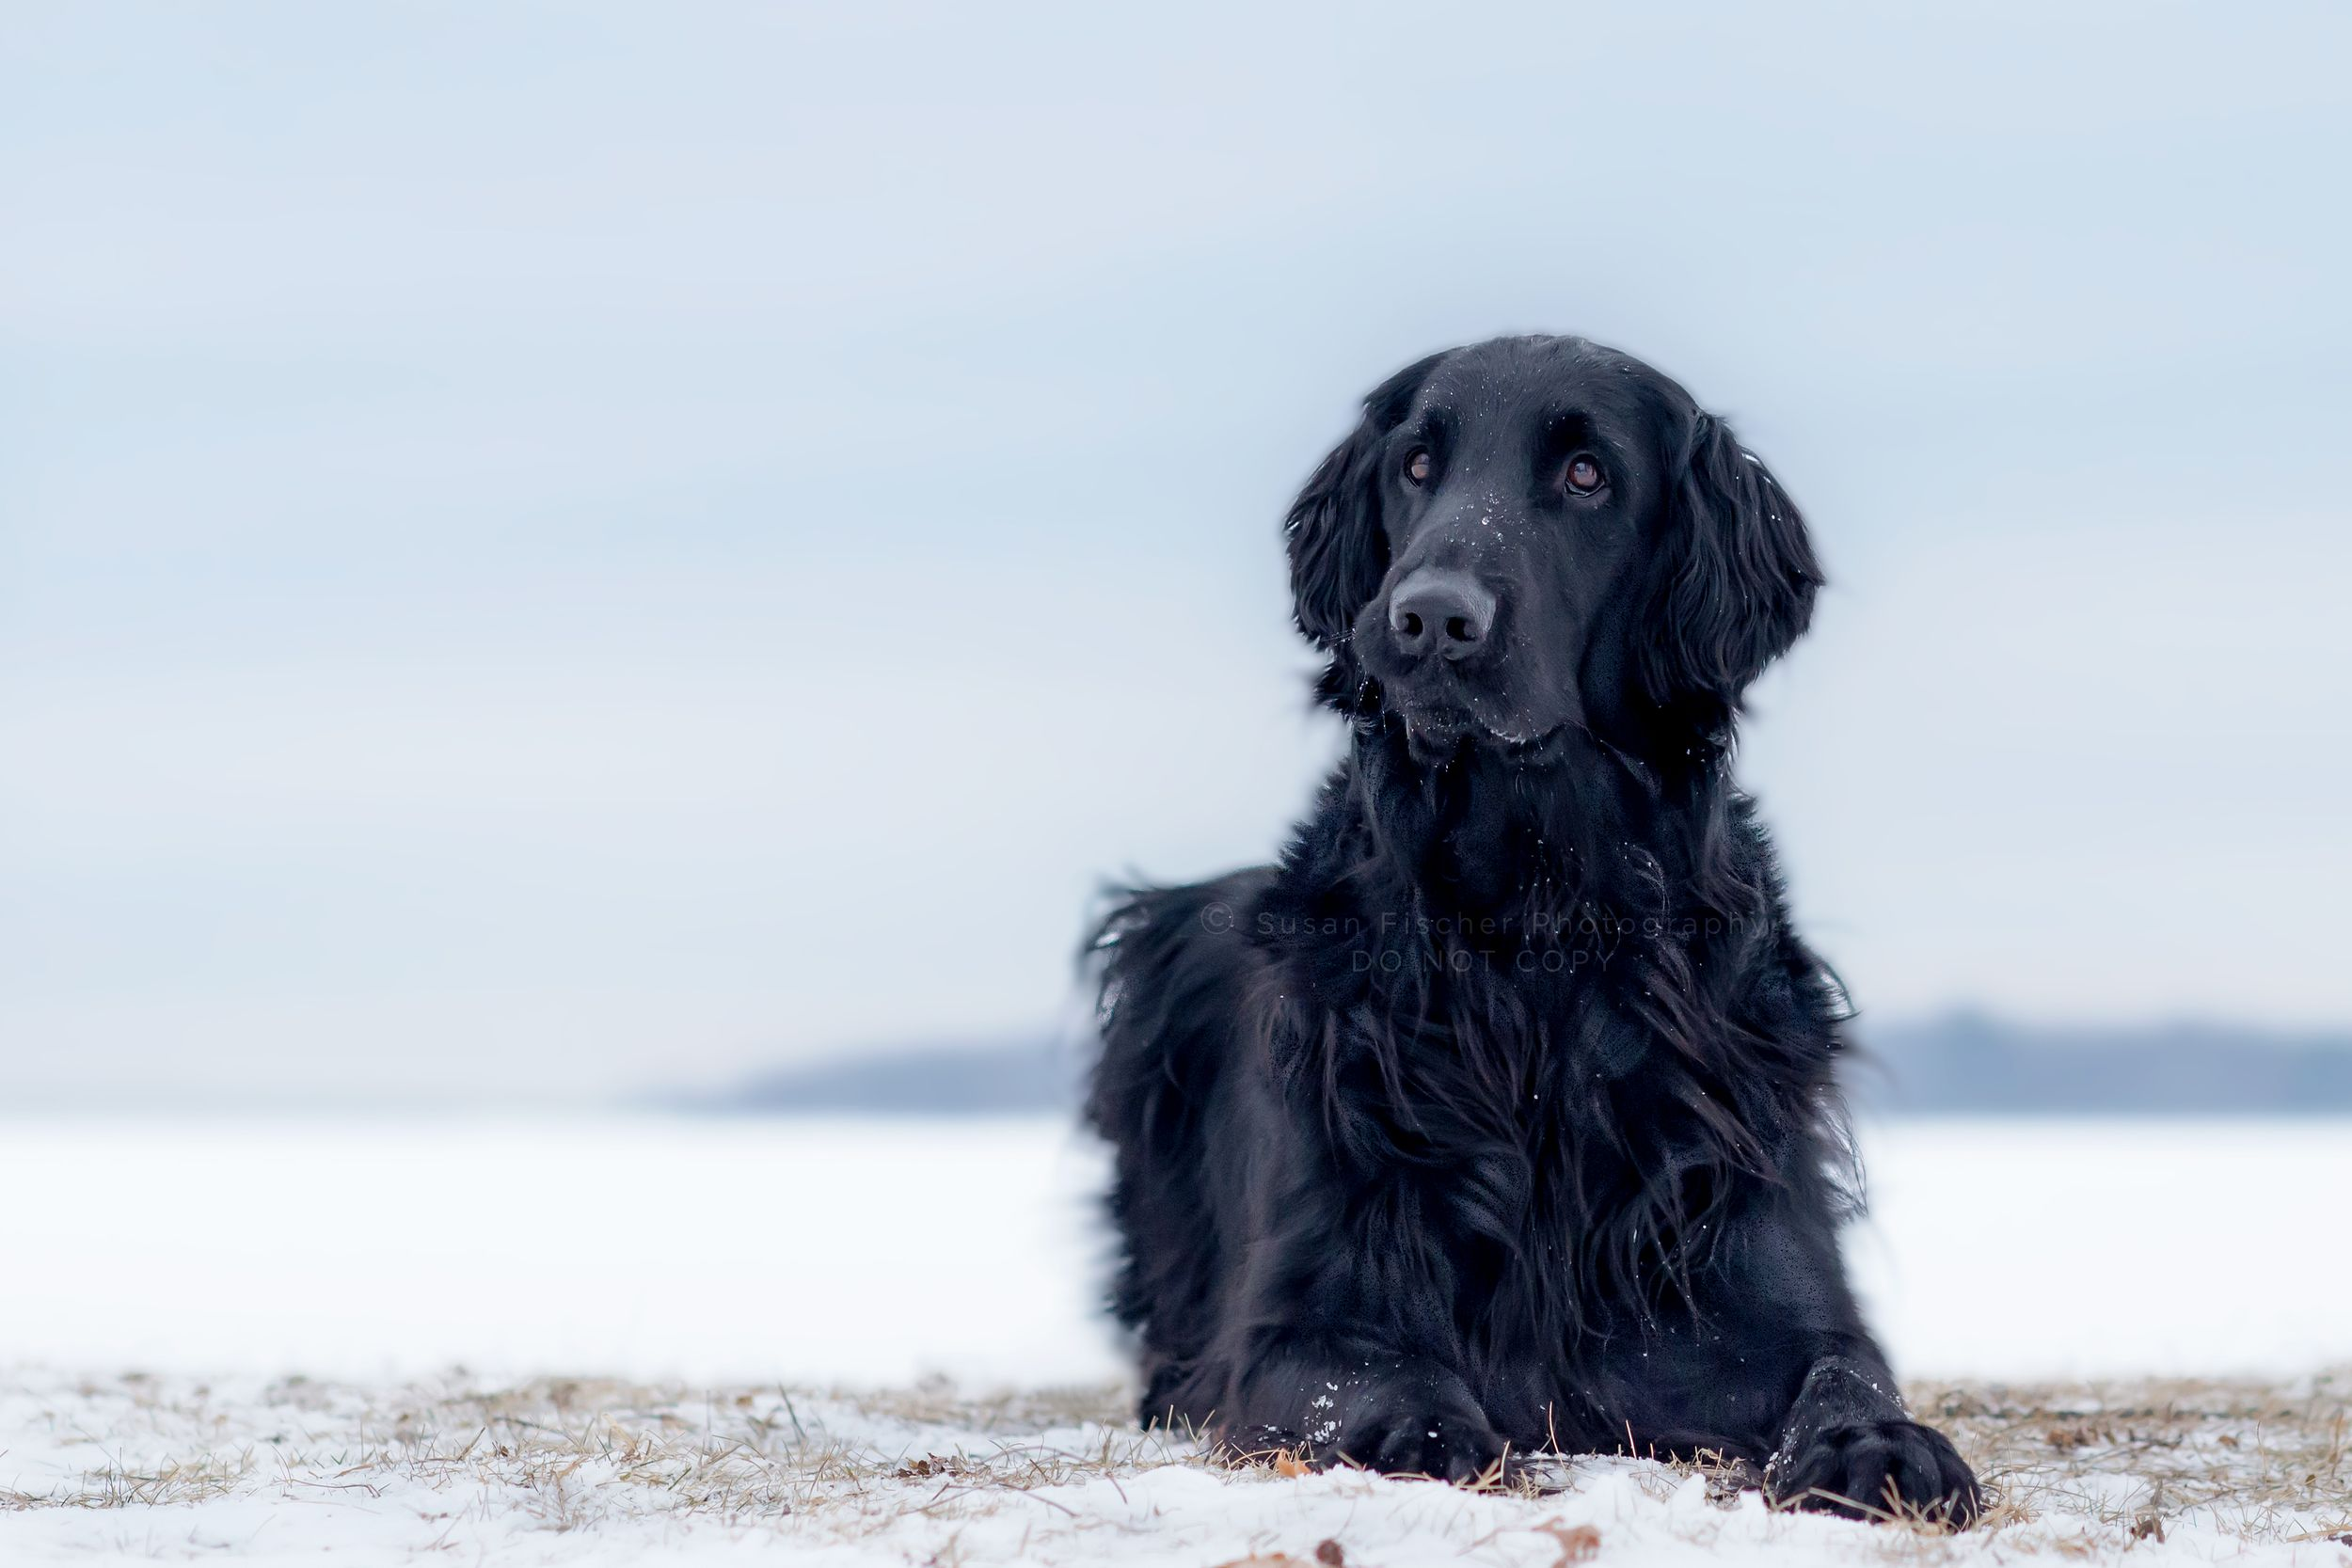 A Flat Coated Retriever with a funny curled lip lying in the snow